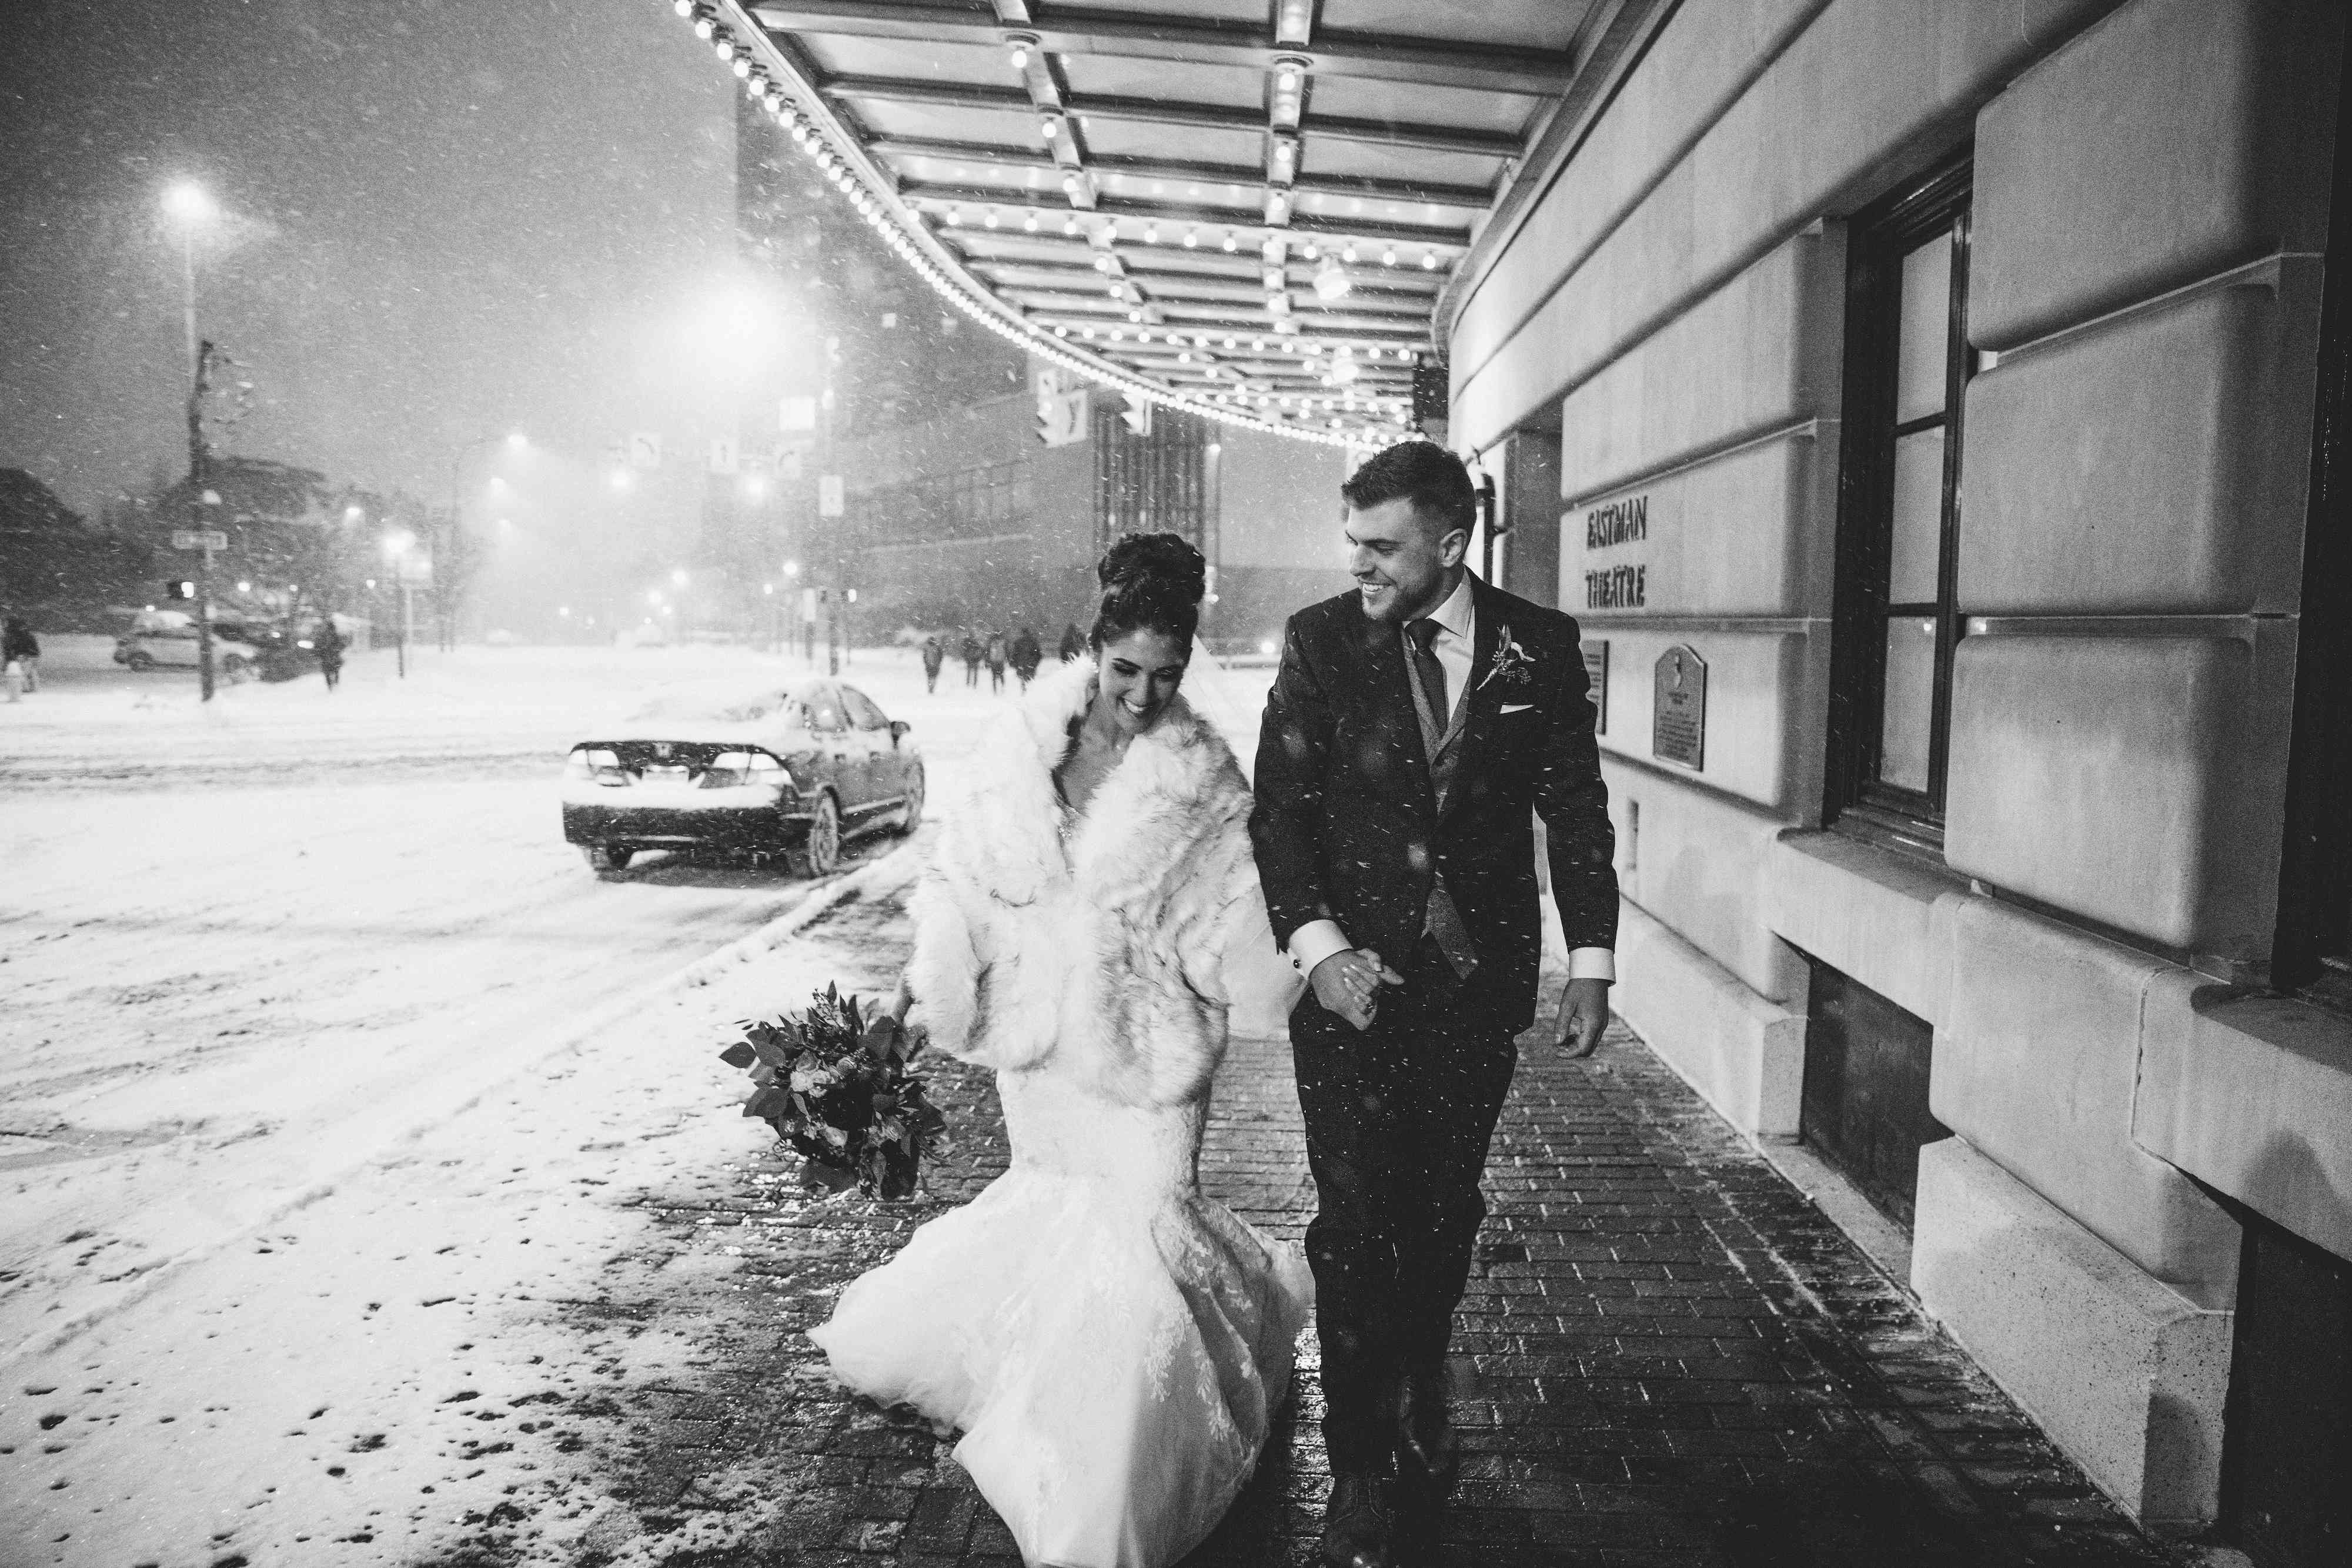 Bride and groom walking through the city while it snows